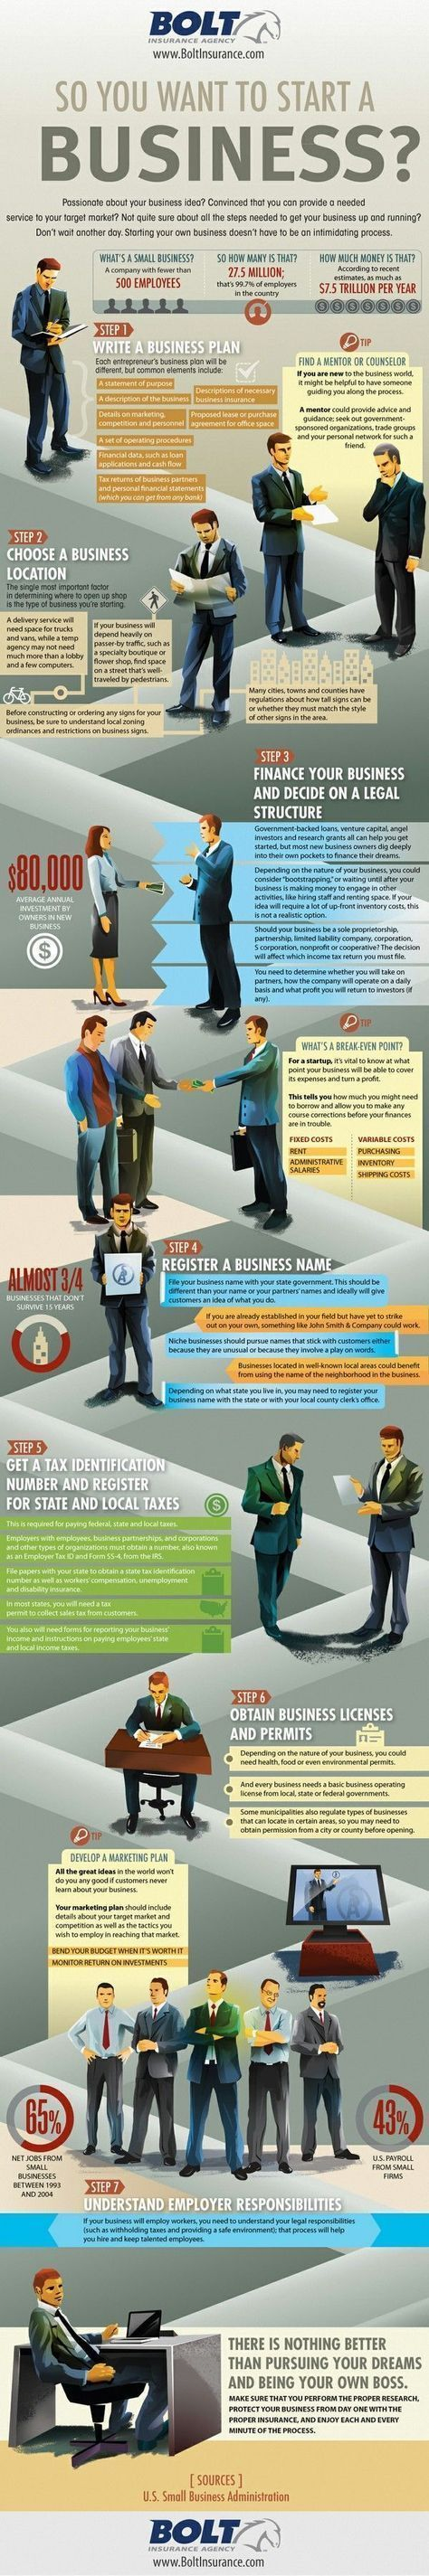 So You Want To Start A Business success business infographic entrepreneur startup startups small business entrepreneur tips tips for entrepreneur startup ideas startup tips small businesses business plan - Tap the link now to Learn how I made it to 1 million in sales in 5 months with e-commerce! I'll give you the 3 advertising phases I did to make it for FREE! #entrepreneur #followback #startup